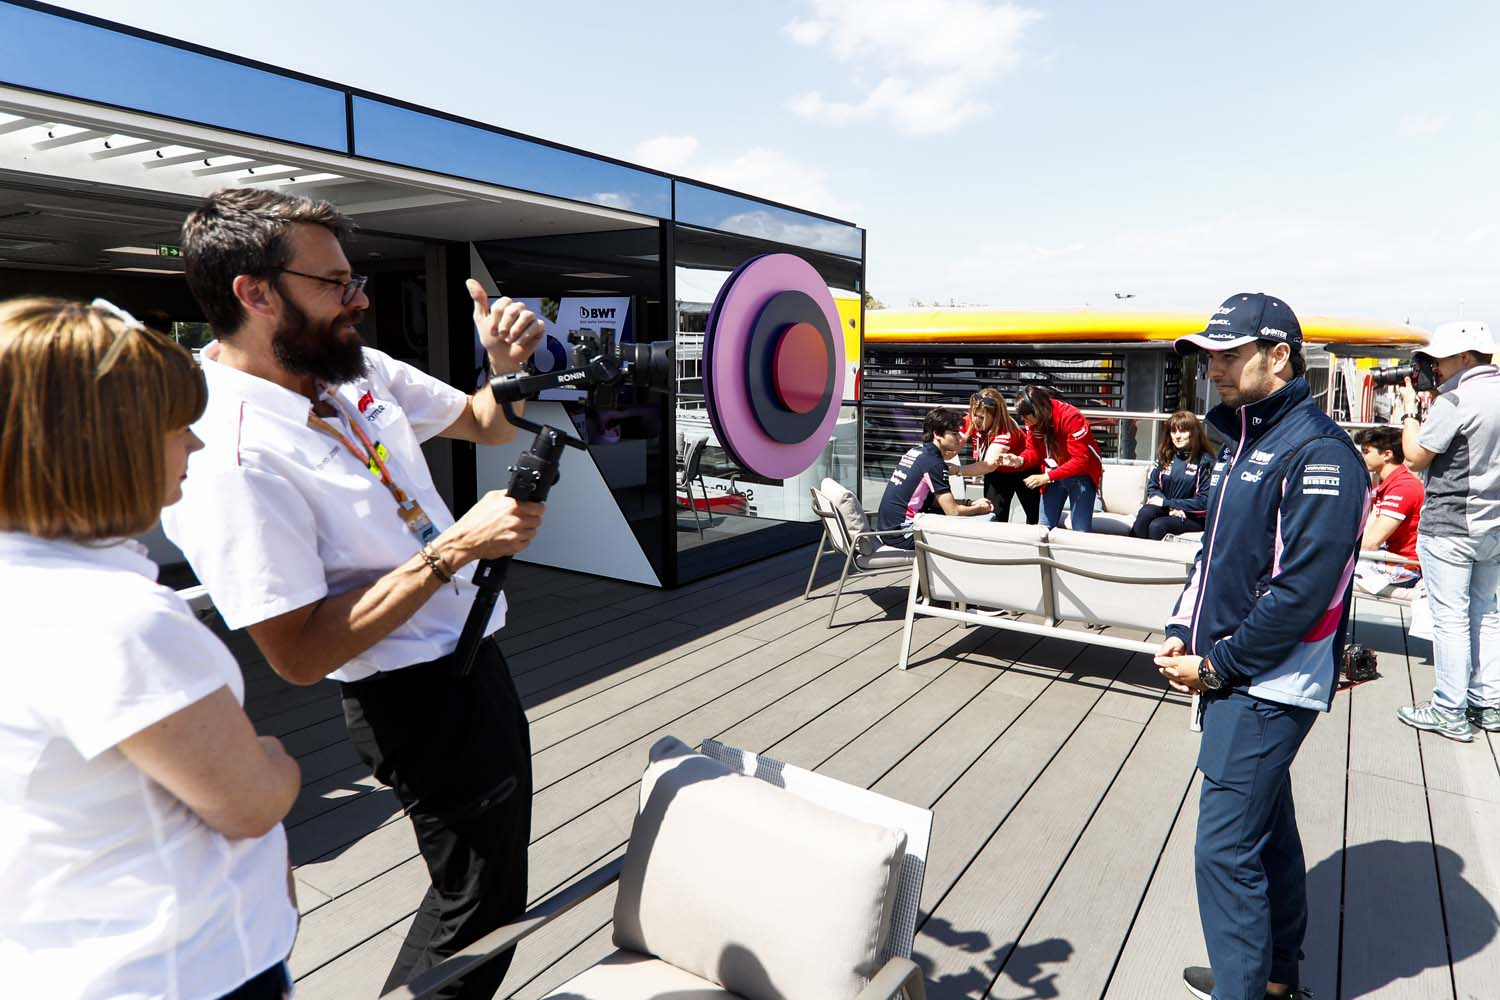 Sergio Perez, Racing Point, poses for a TV camera